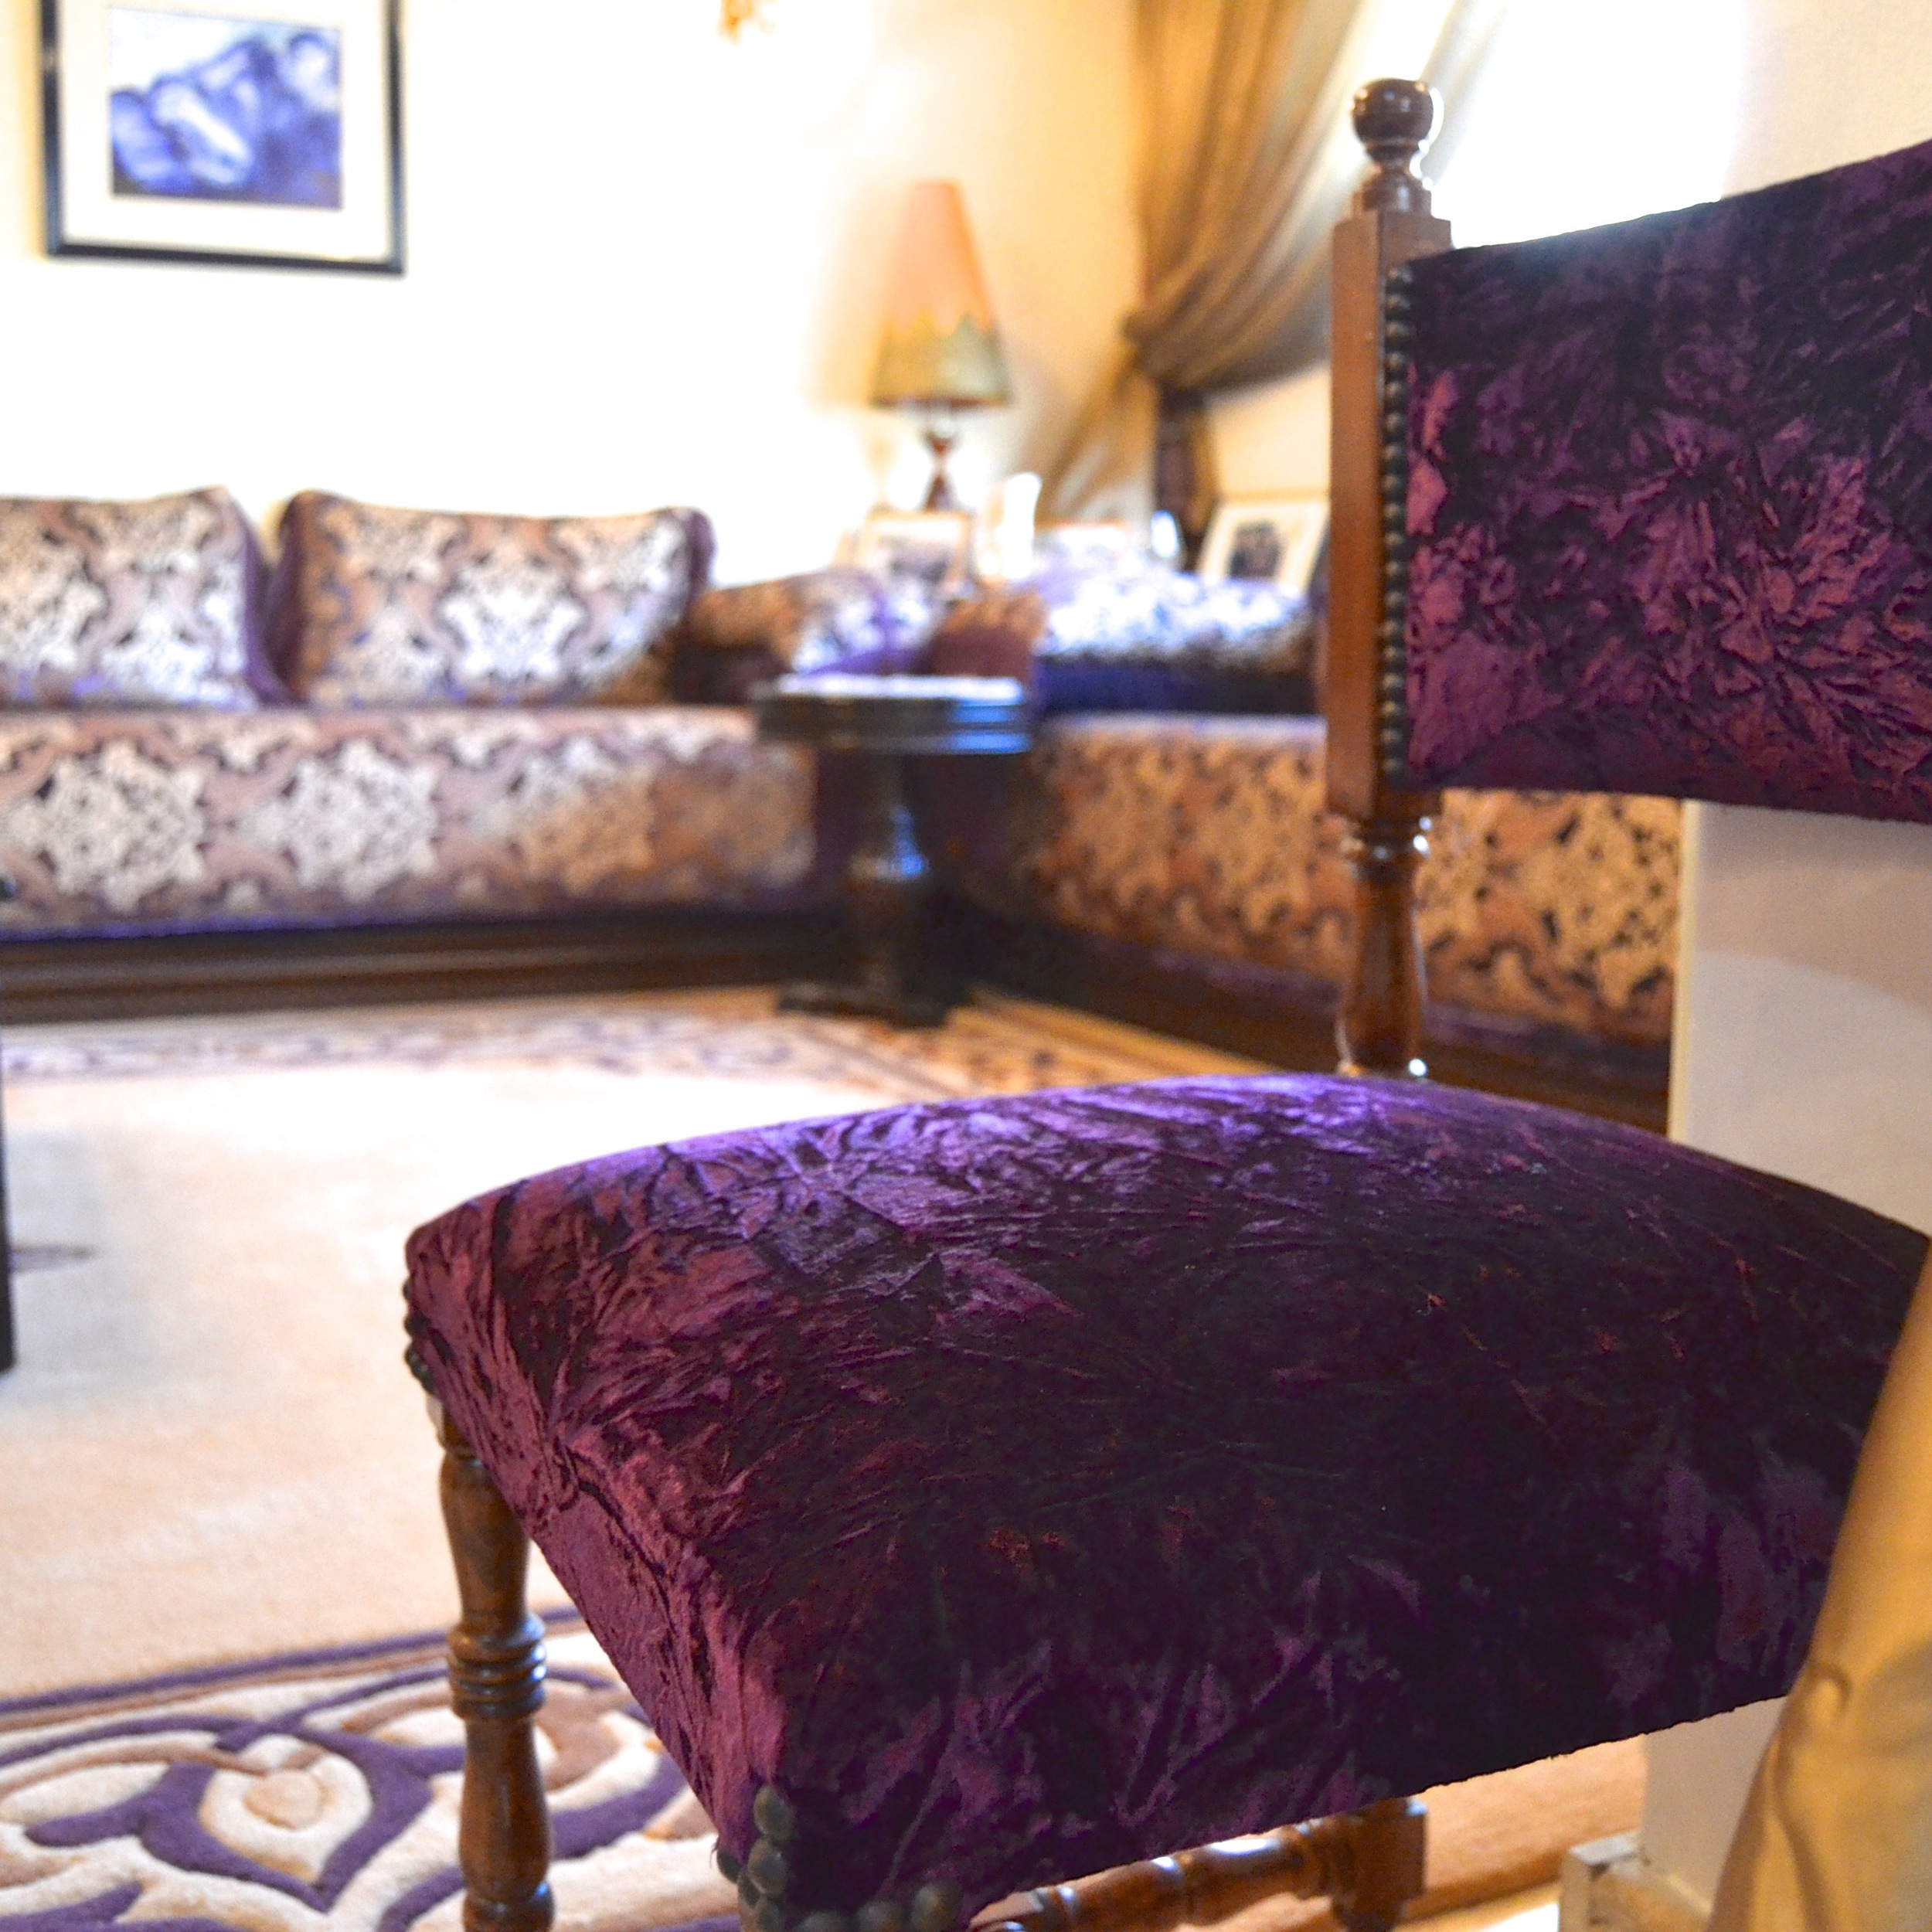 Small chairs can be pulled up for more guests to join festivities.